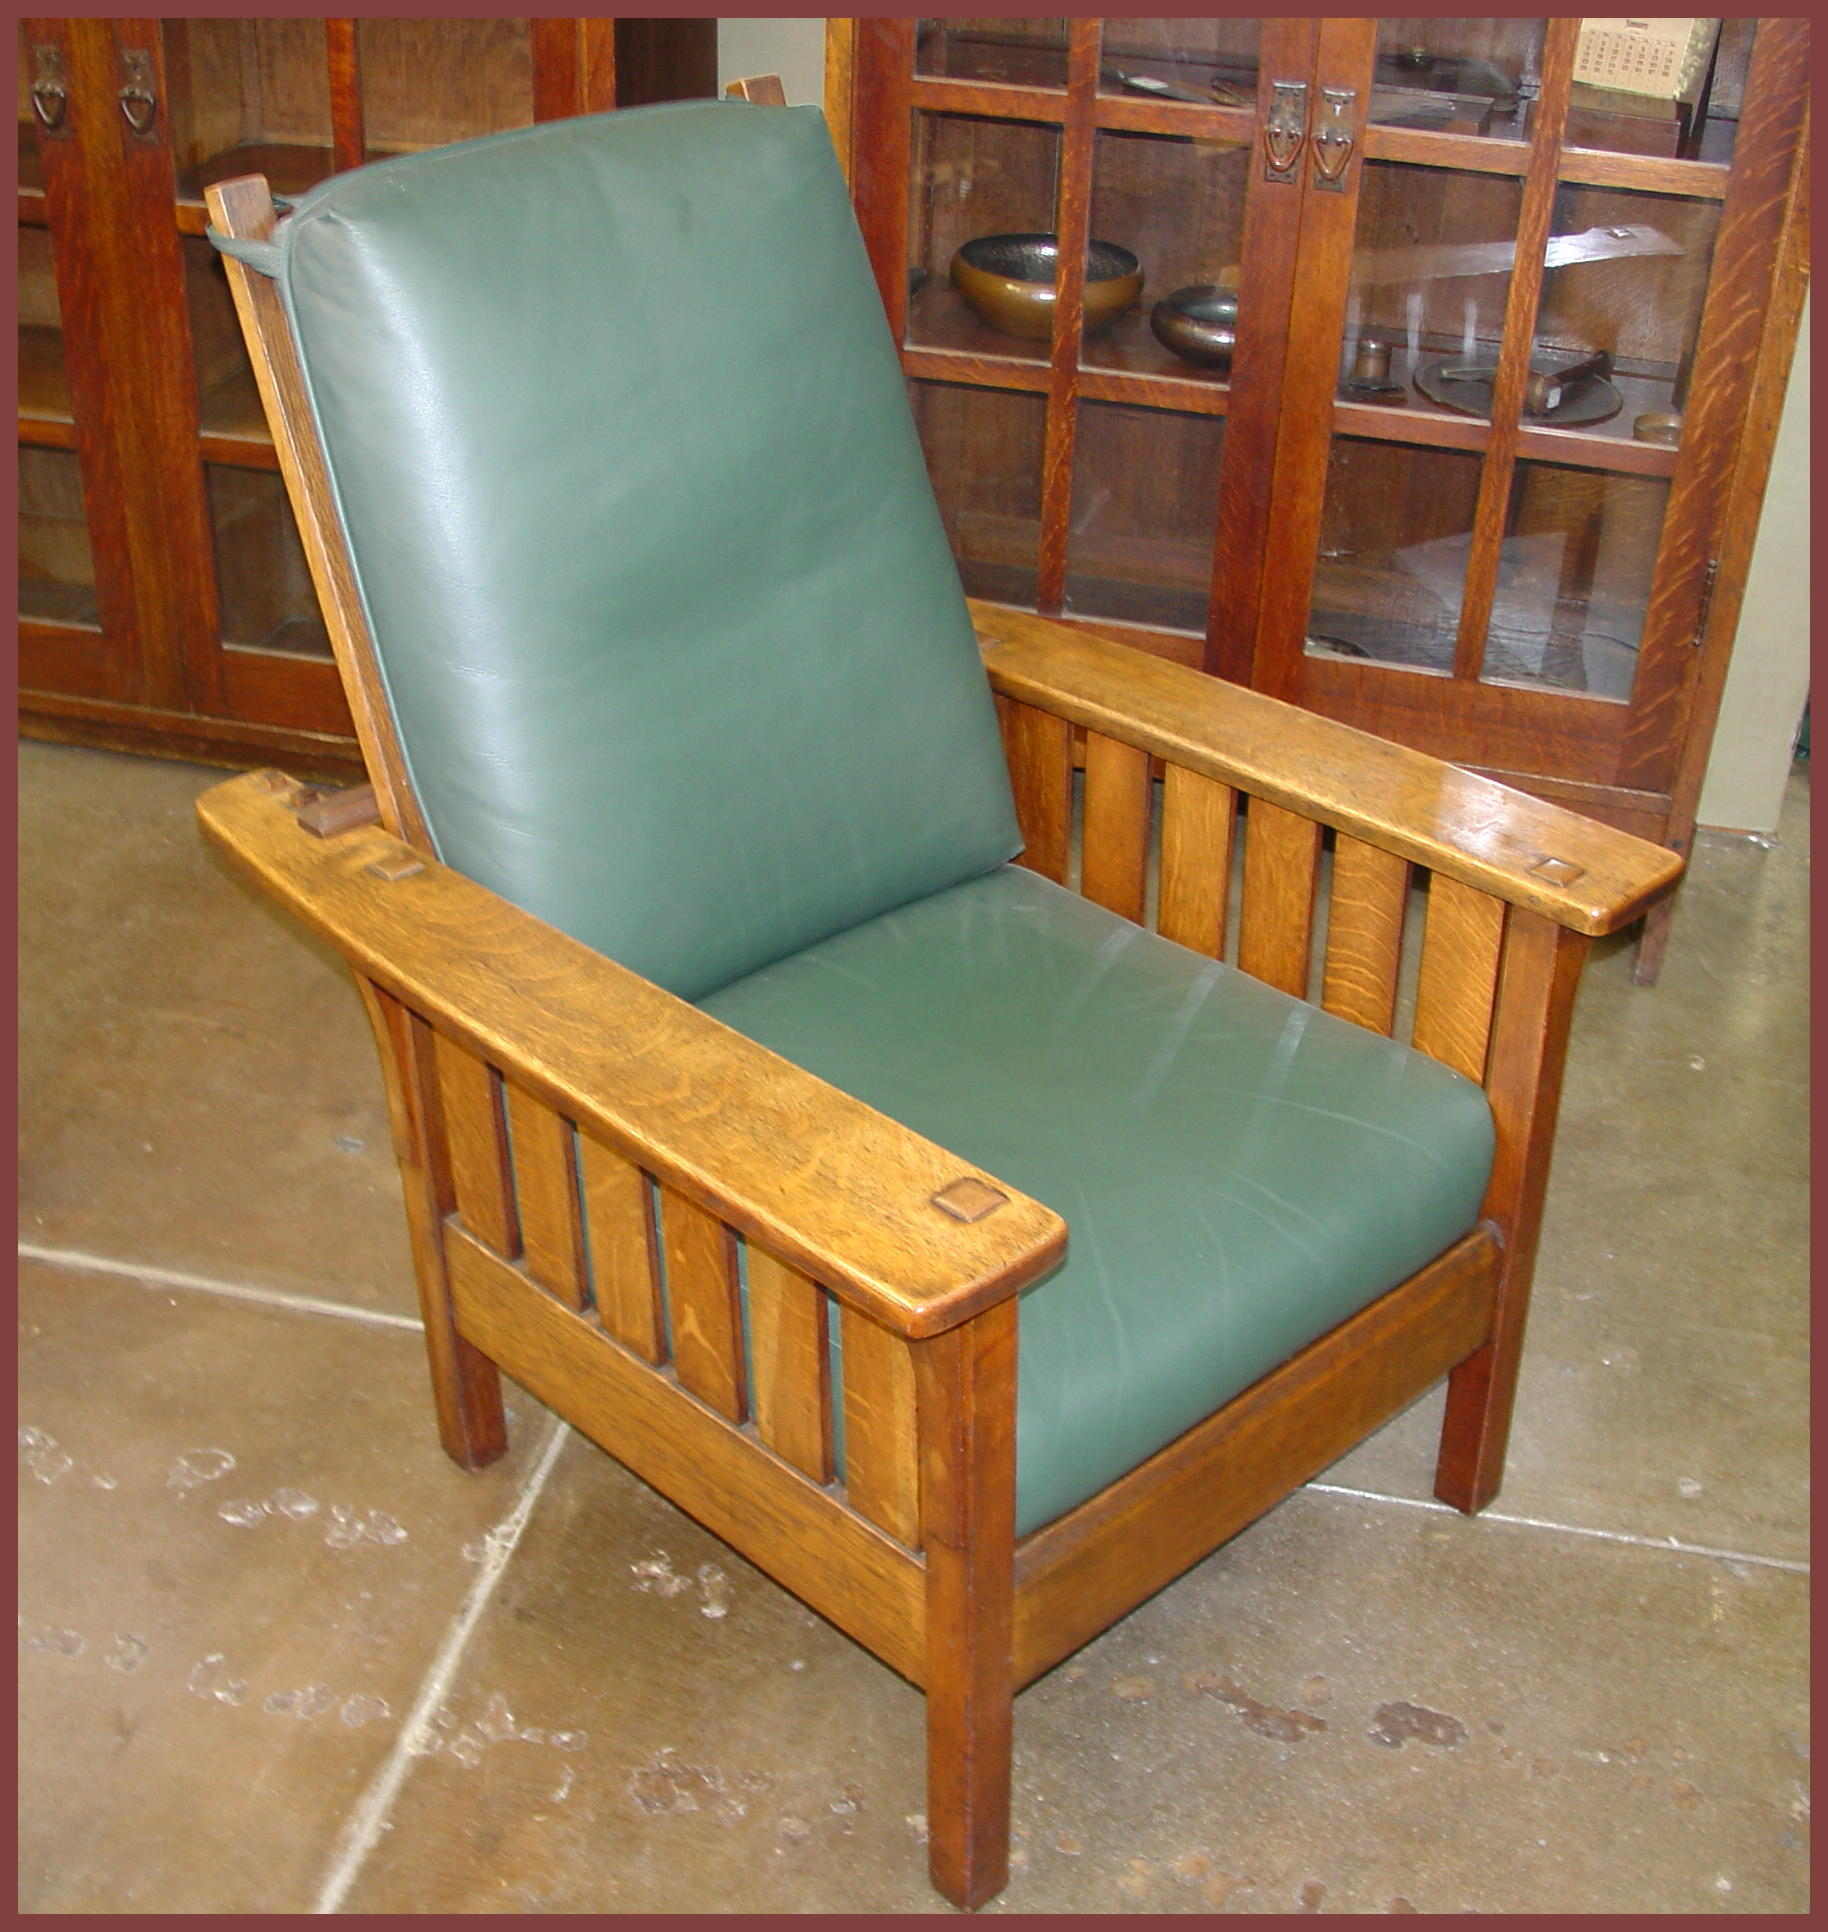 L. \u0026 J. G. Stickley Original Morris Chair with Slats under each ... & Voorhees Craftsman Mission Oak Furniture - L. \u0026 J. G. Stickley ... islam-shia.org